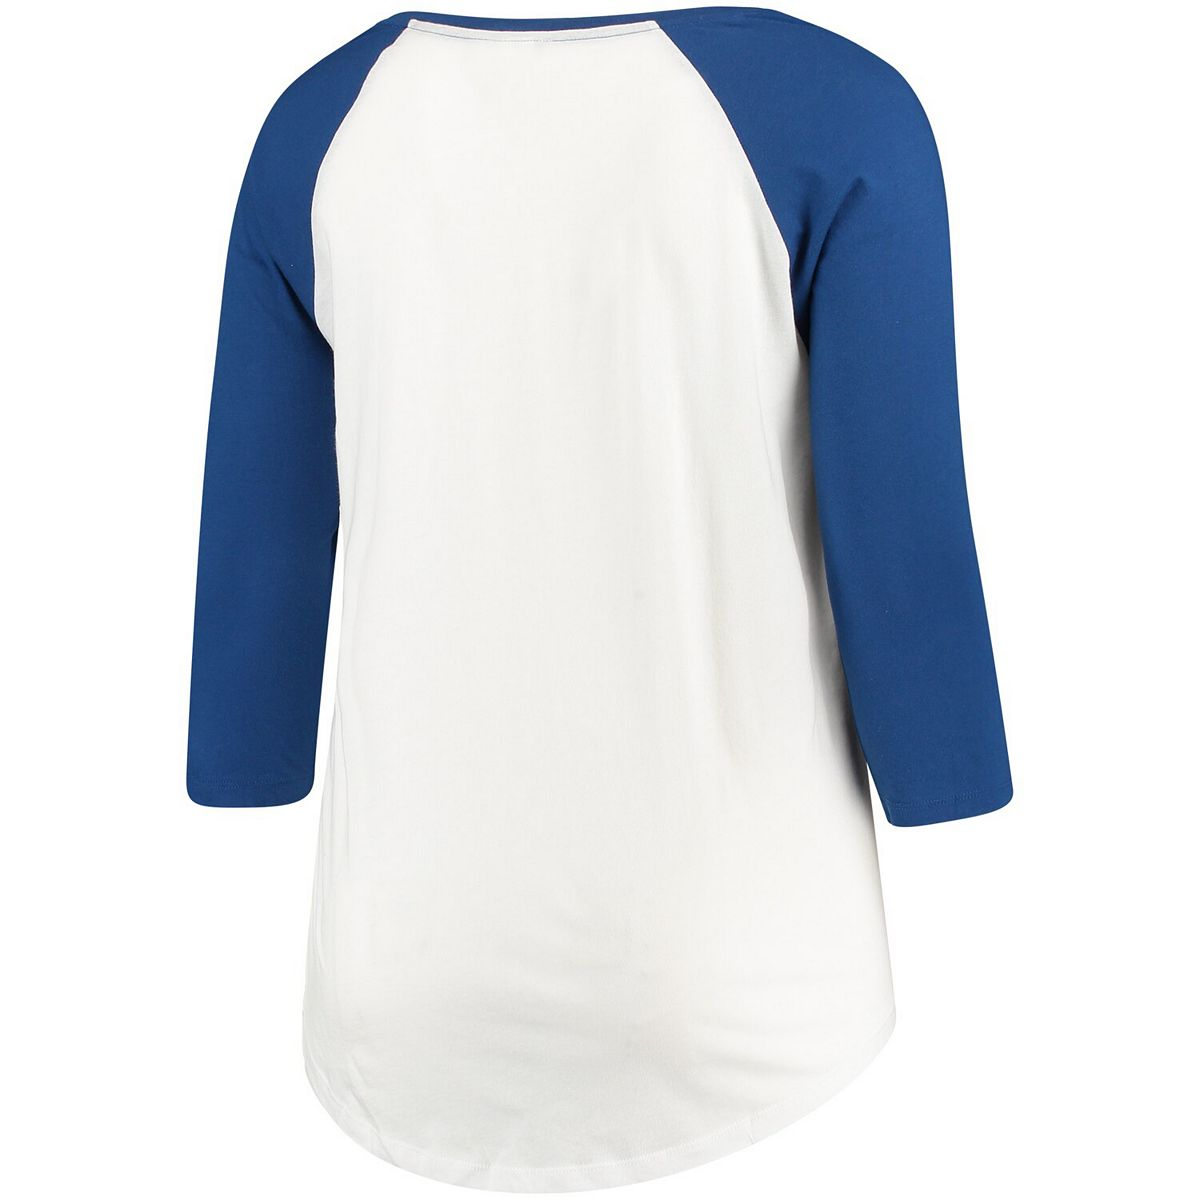 Women's 5th & Ocean by New Era White/Navy Los Angeles Chargers Plus Size 3/4-Sleeve Raglan T-Shirt Pc0aM